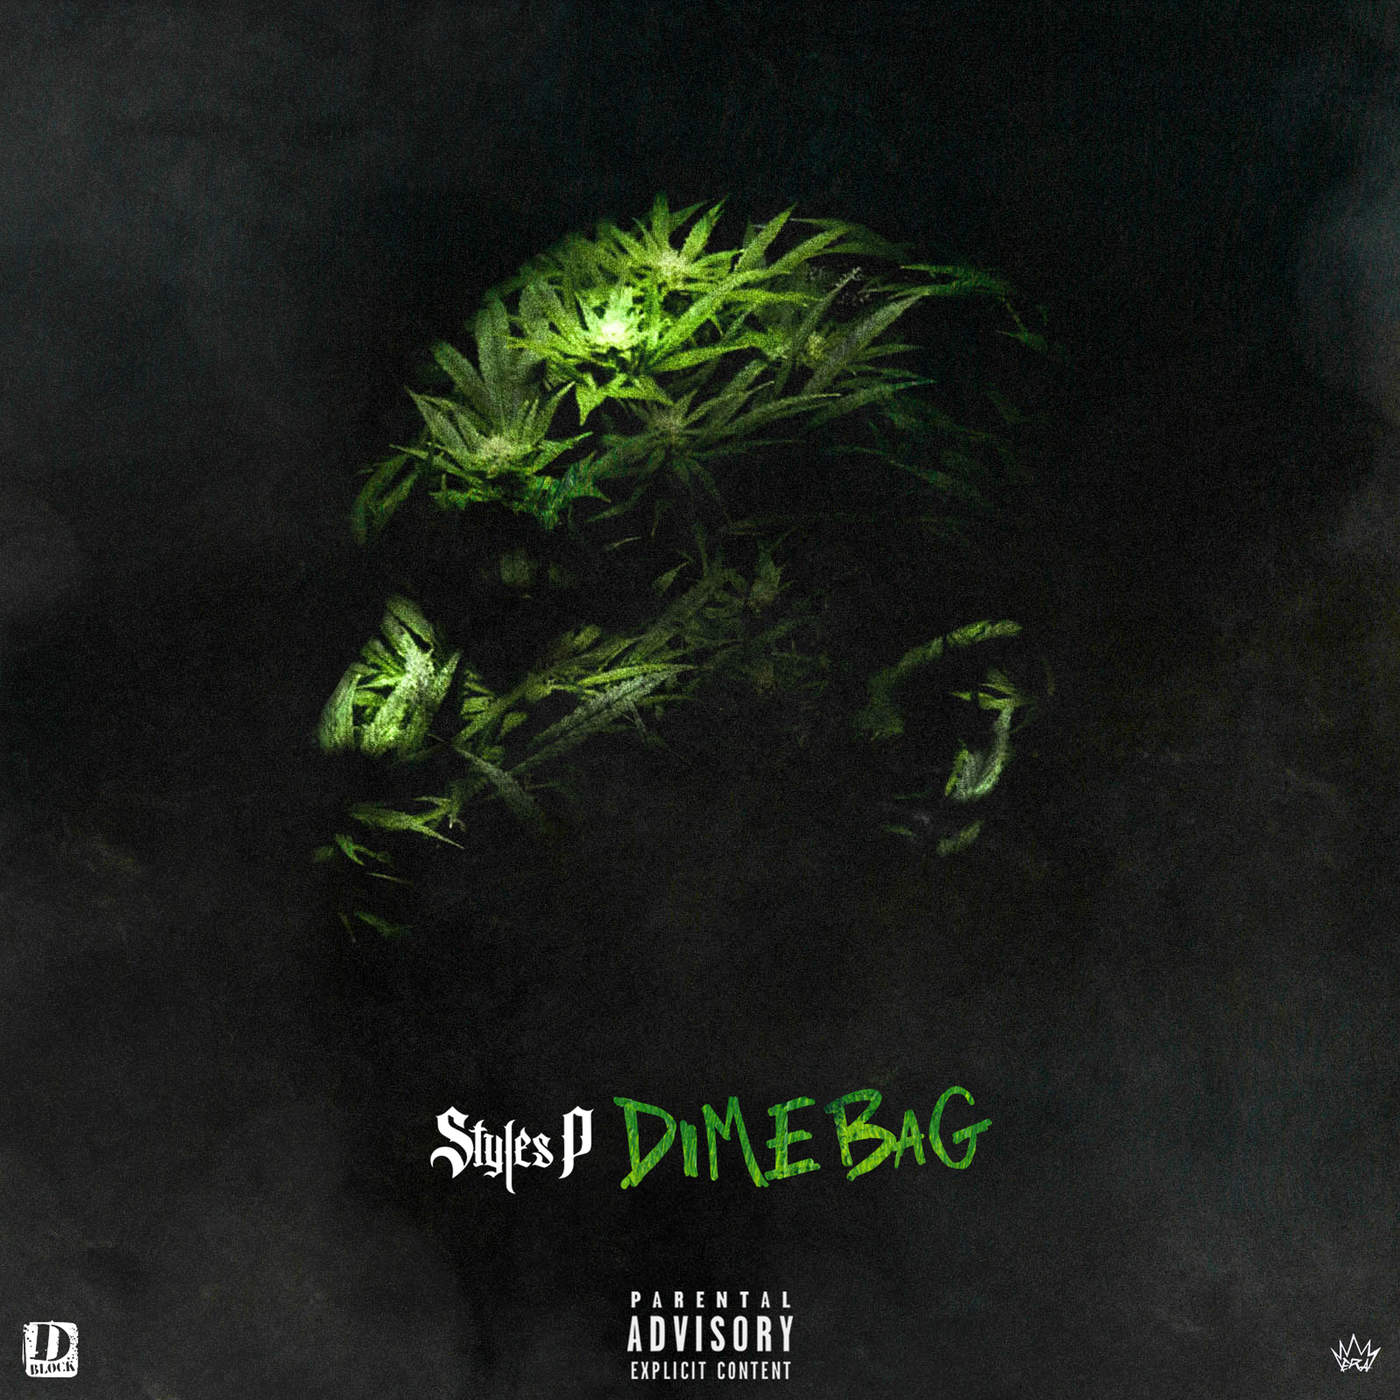 .@therealstylesp drops his new solo project, #DimeBag. Stream it now: https://t.co/5oZsGLiHbw �� https://t.co/7uVCjDhXB1